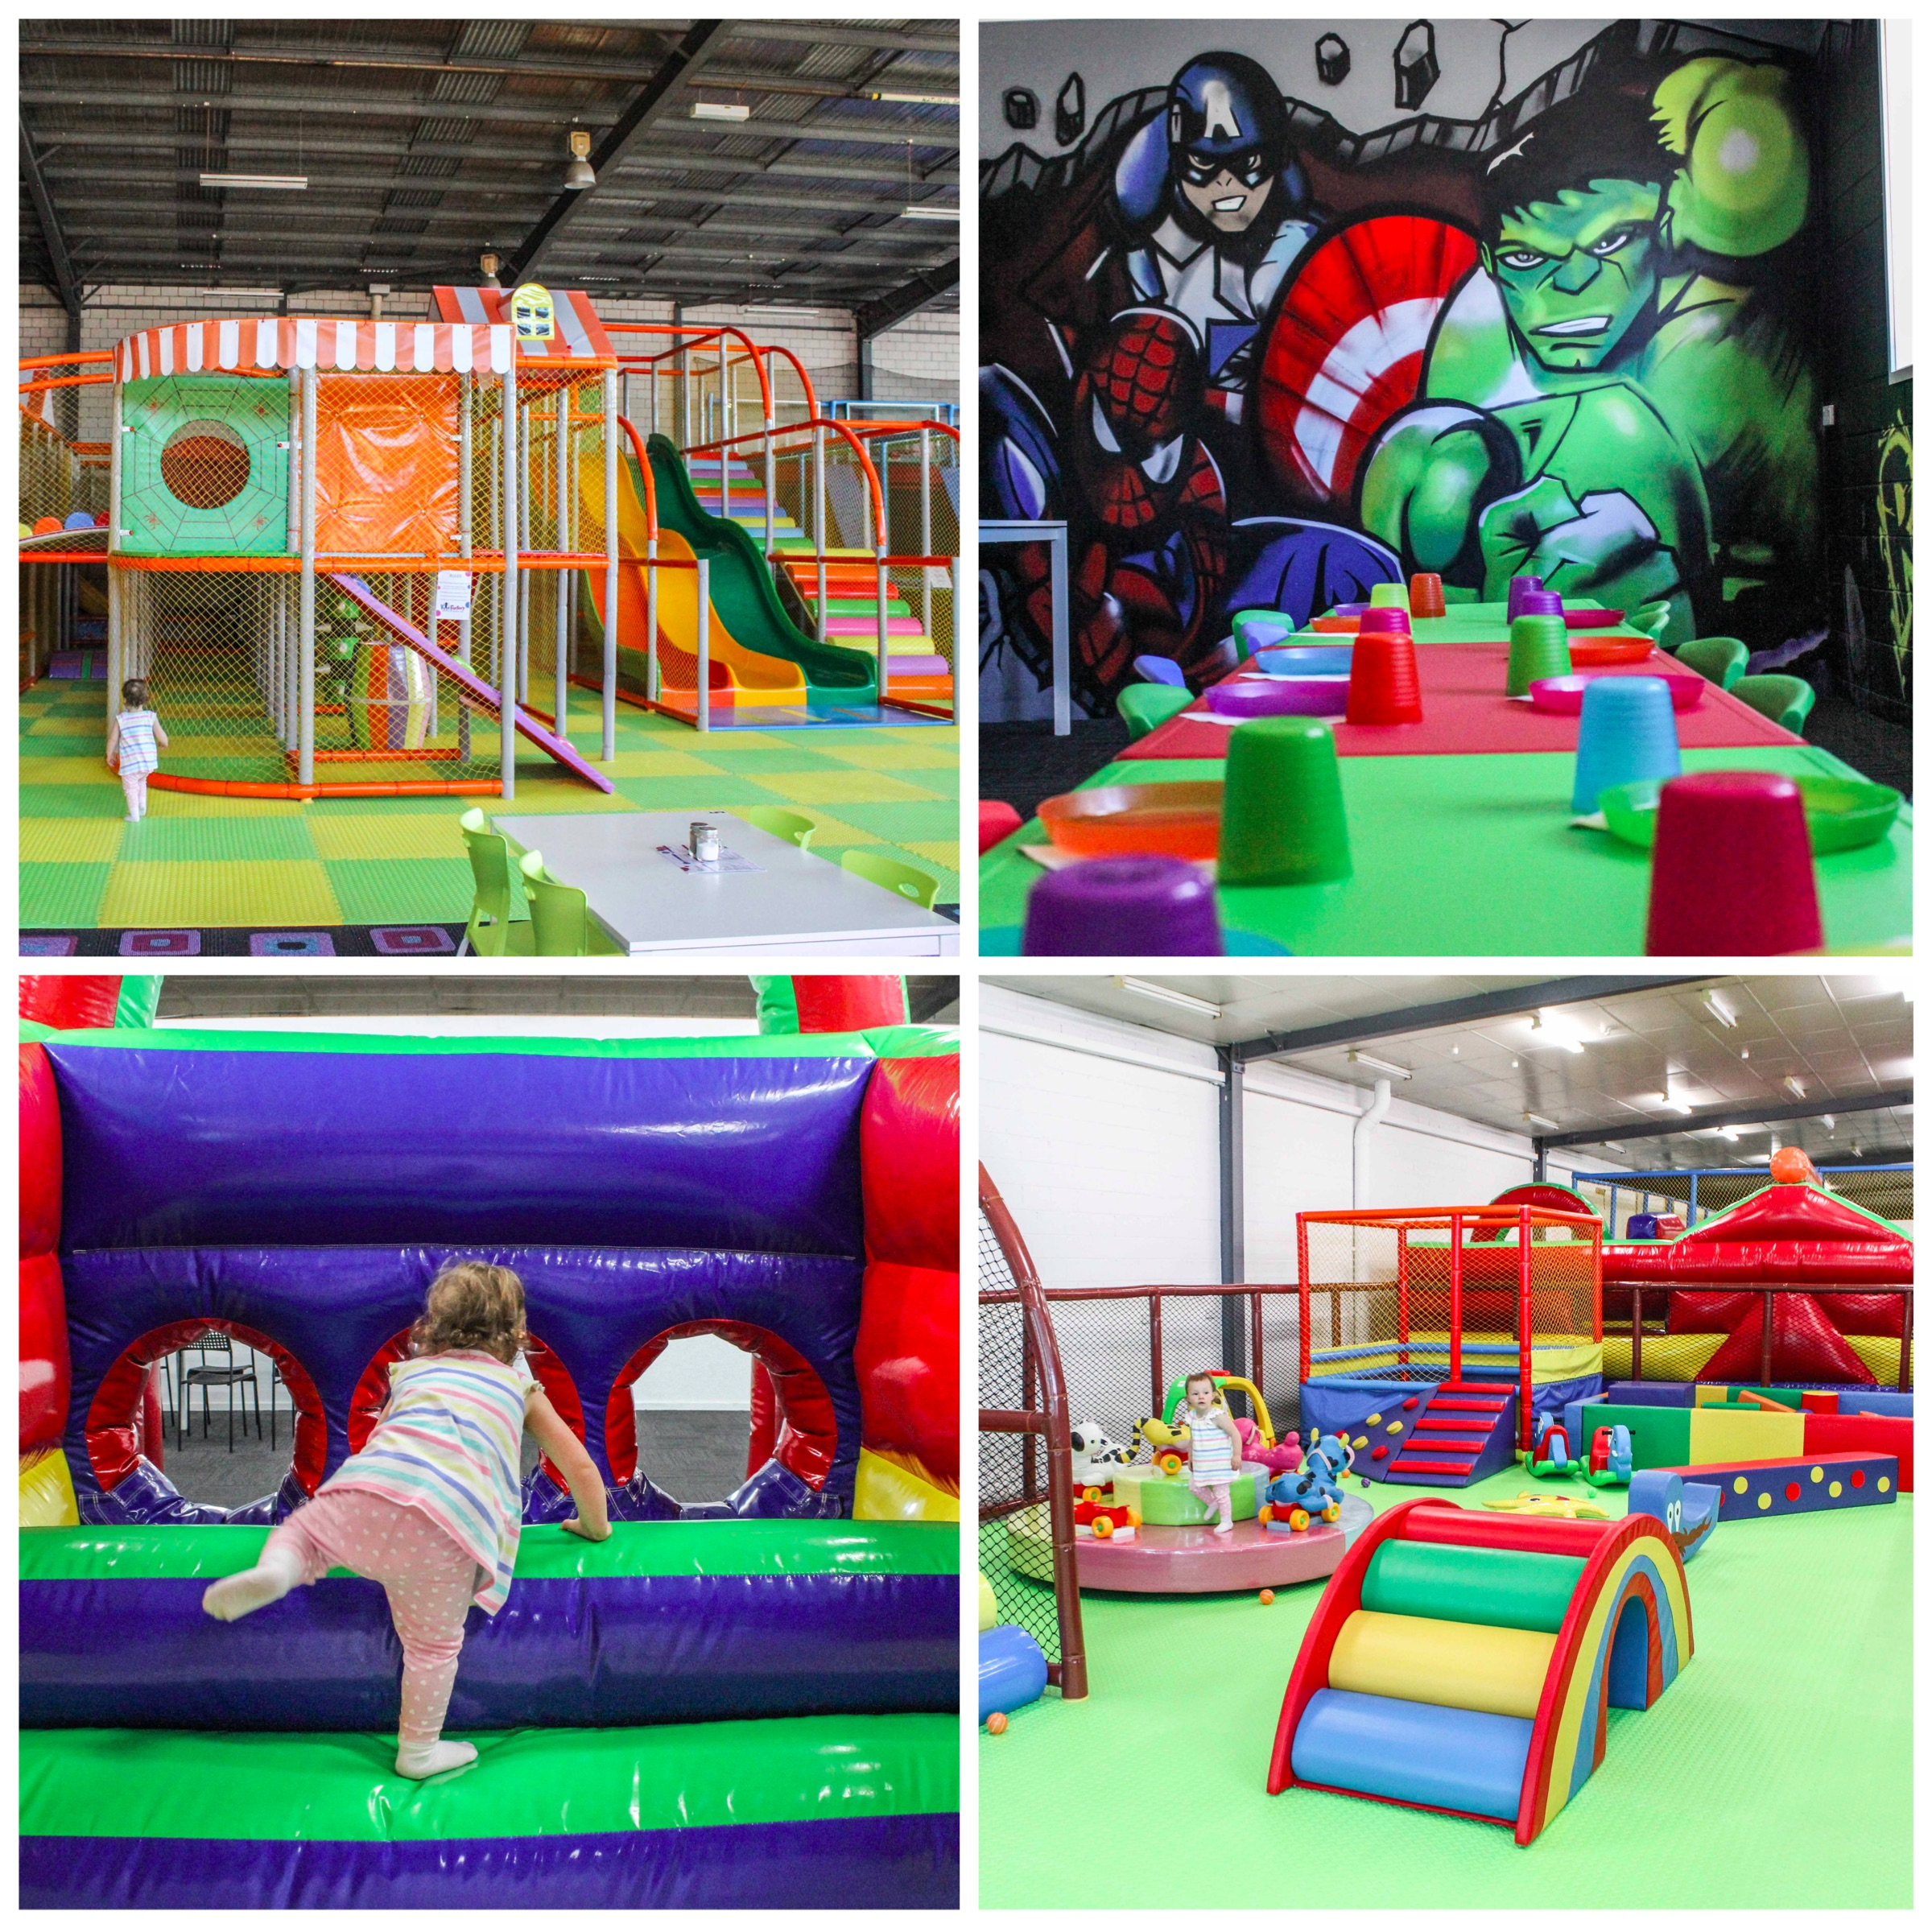 Mamma Knows South - Kid Factory Indoor Play Centre Dingley VillageIndoor playcentre Melbourne's South